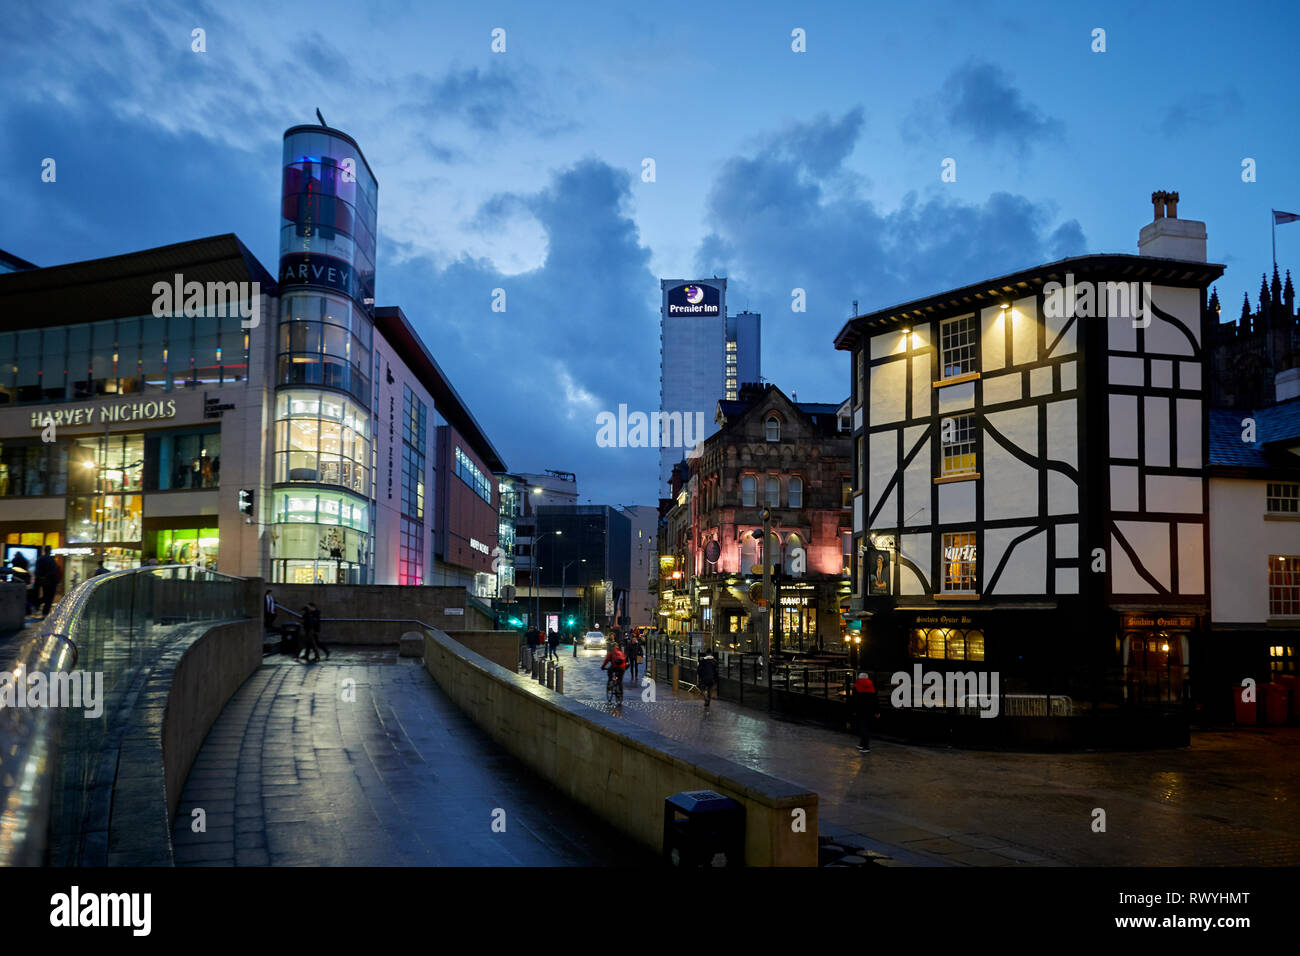 Designer department store Harvey Nichols and rebuilt Old Wellington Inn and Sinclair's Oyster Bar at Exchange Square, Shambles Square,  Manchester cit Stock Photo